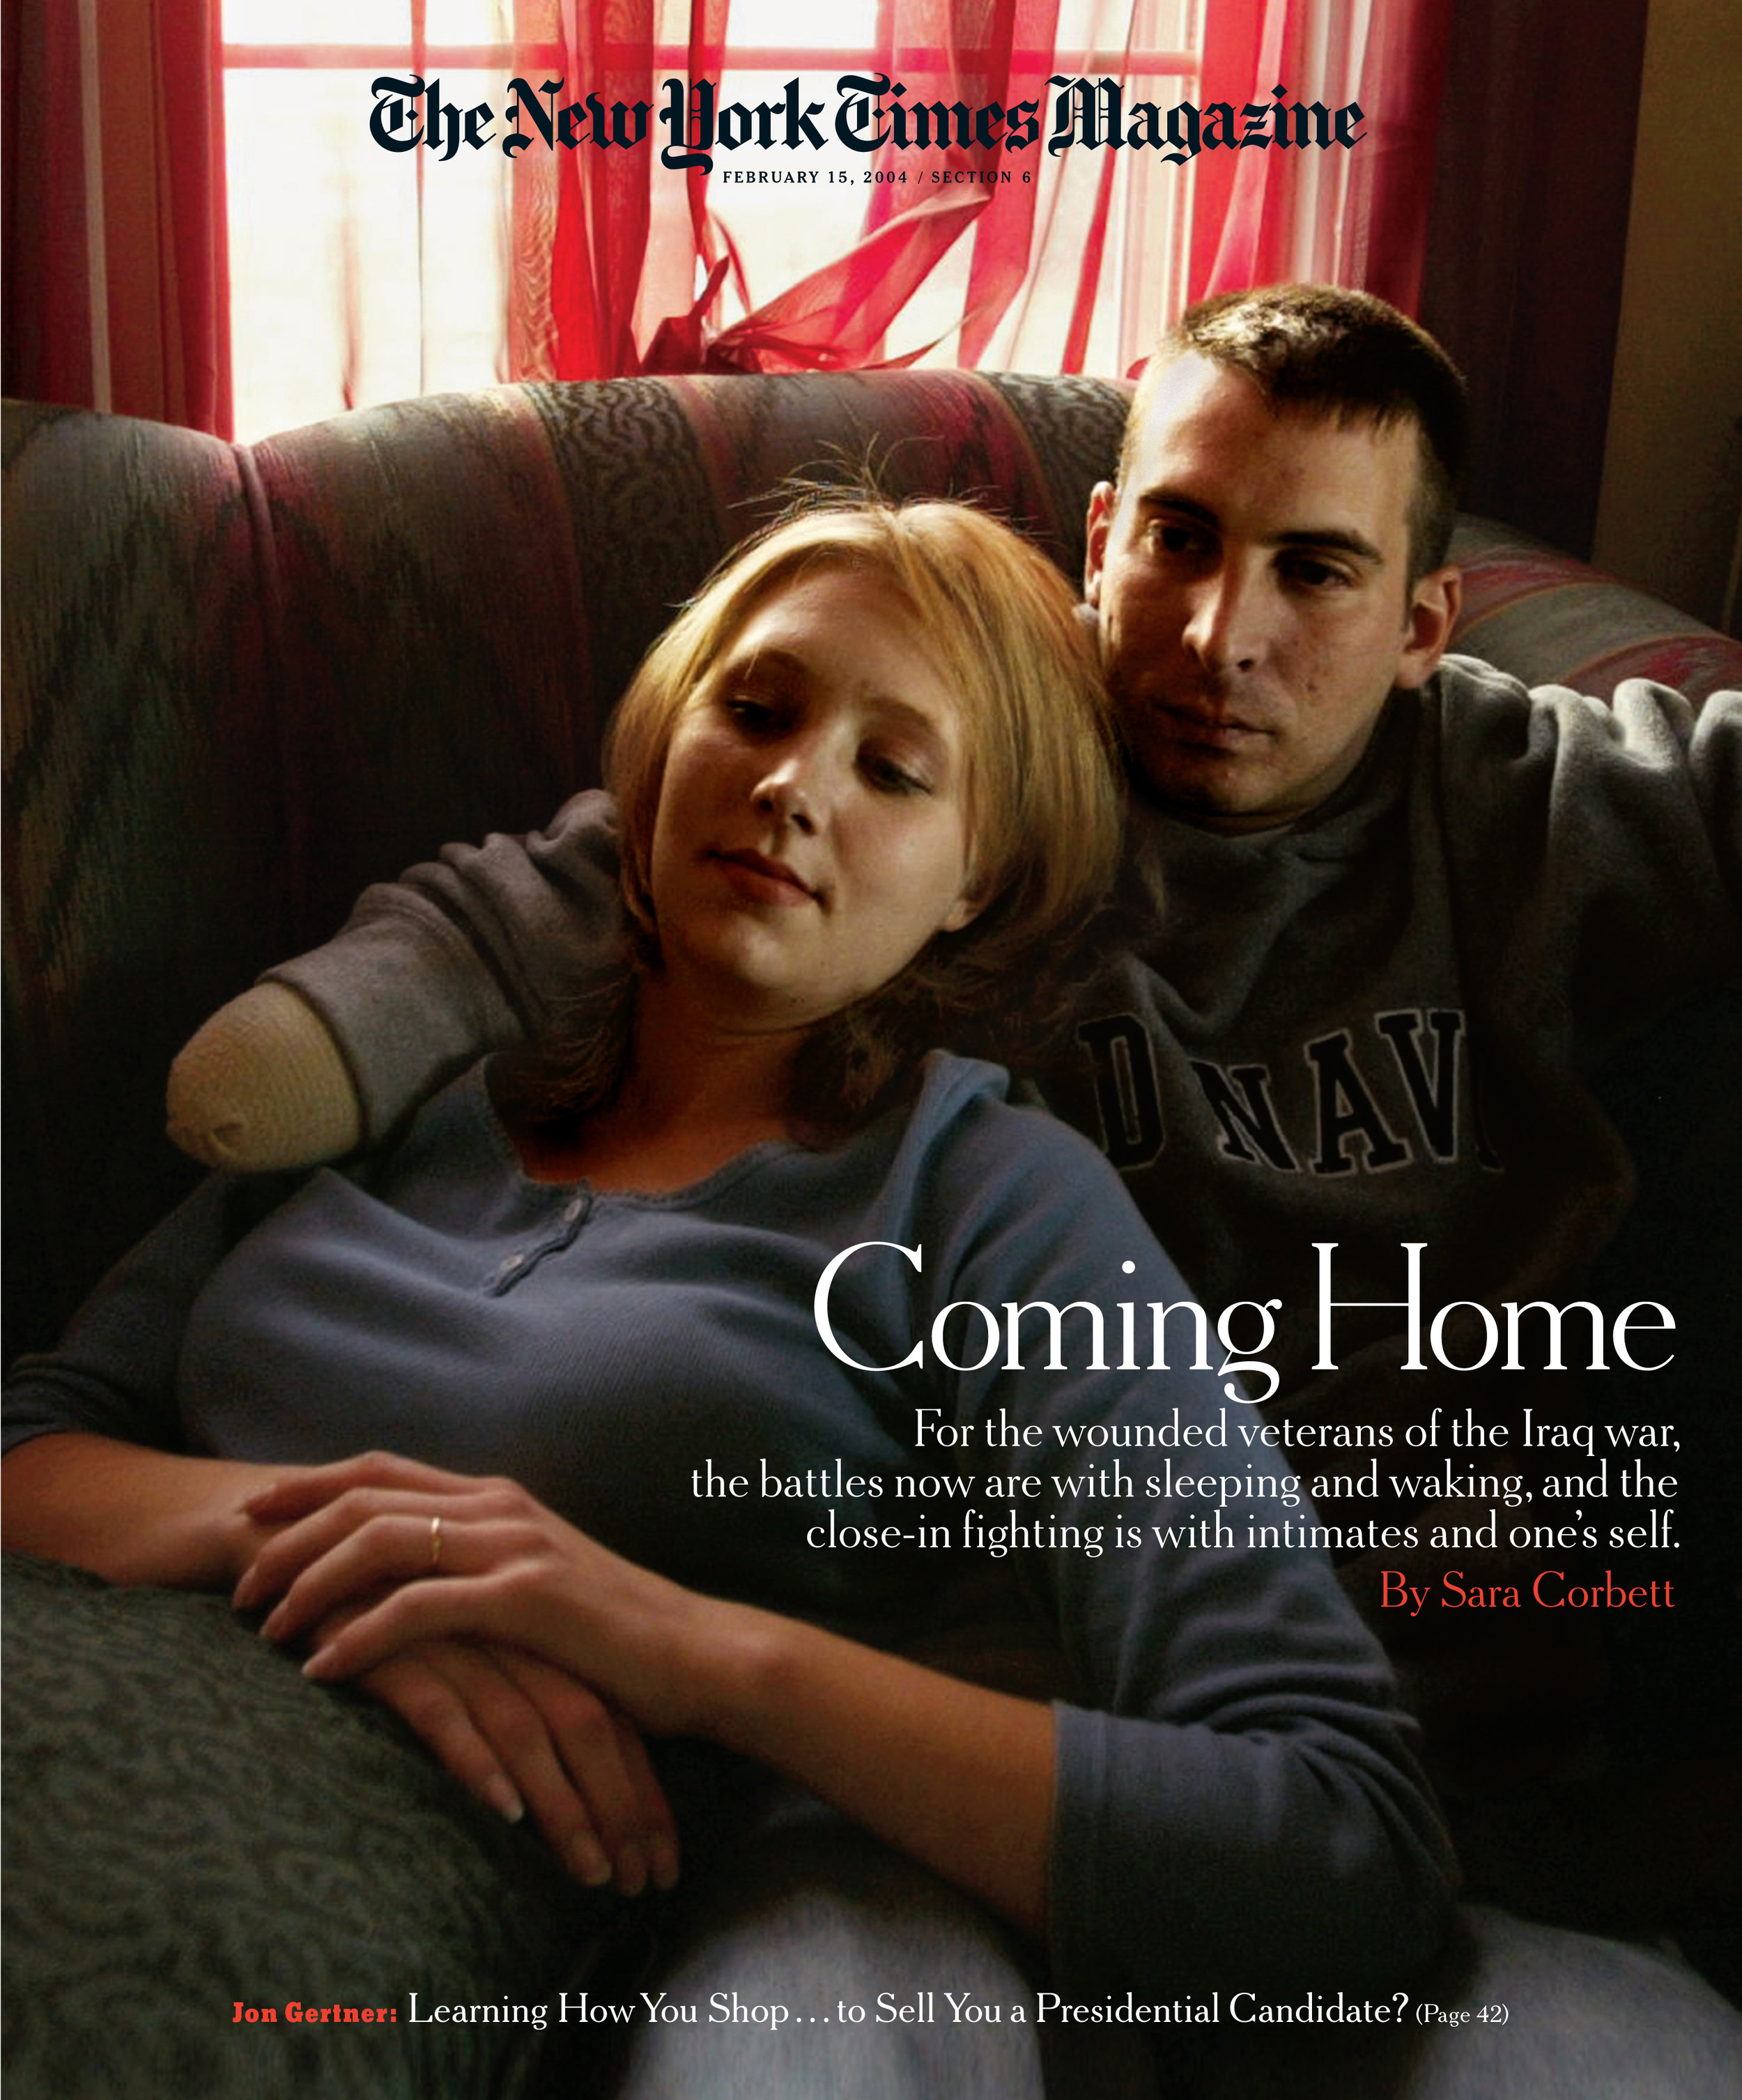 COVER.02.15.04.Wounded Soldiers-0Cover.jpg